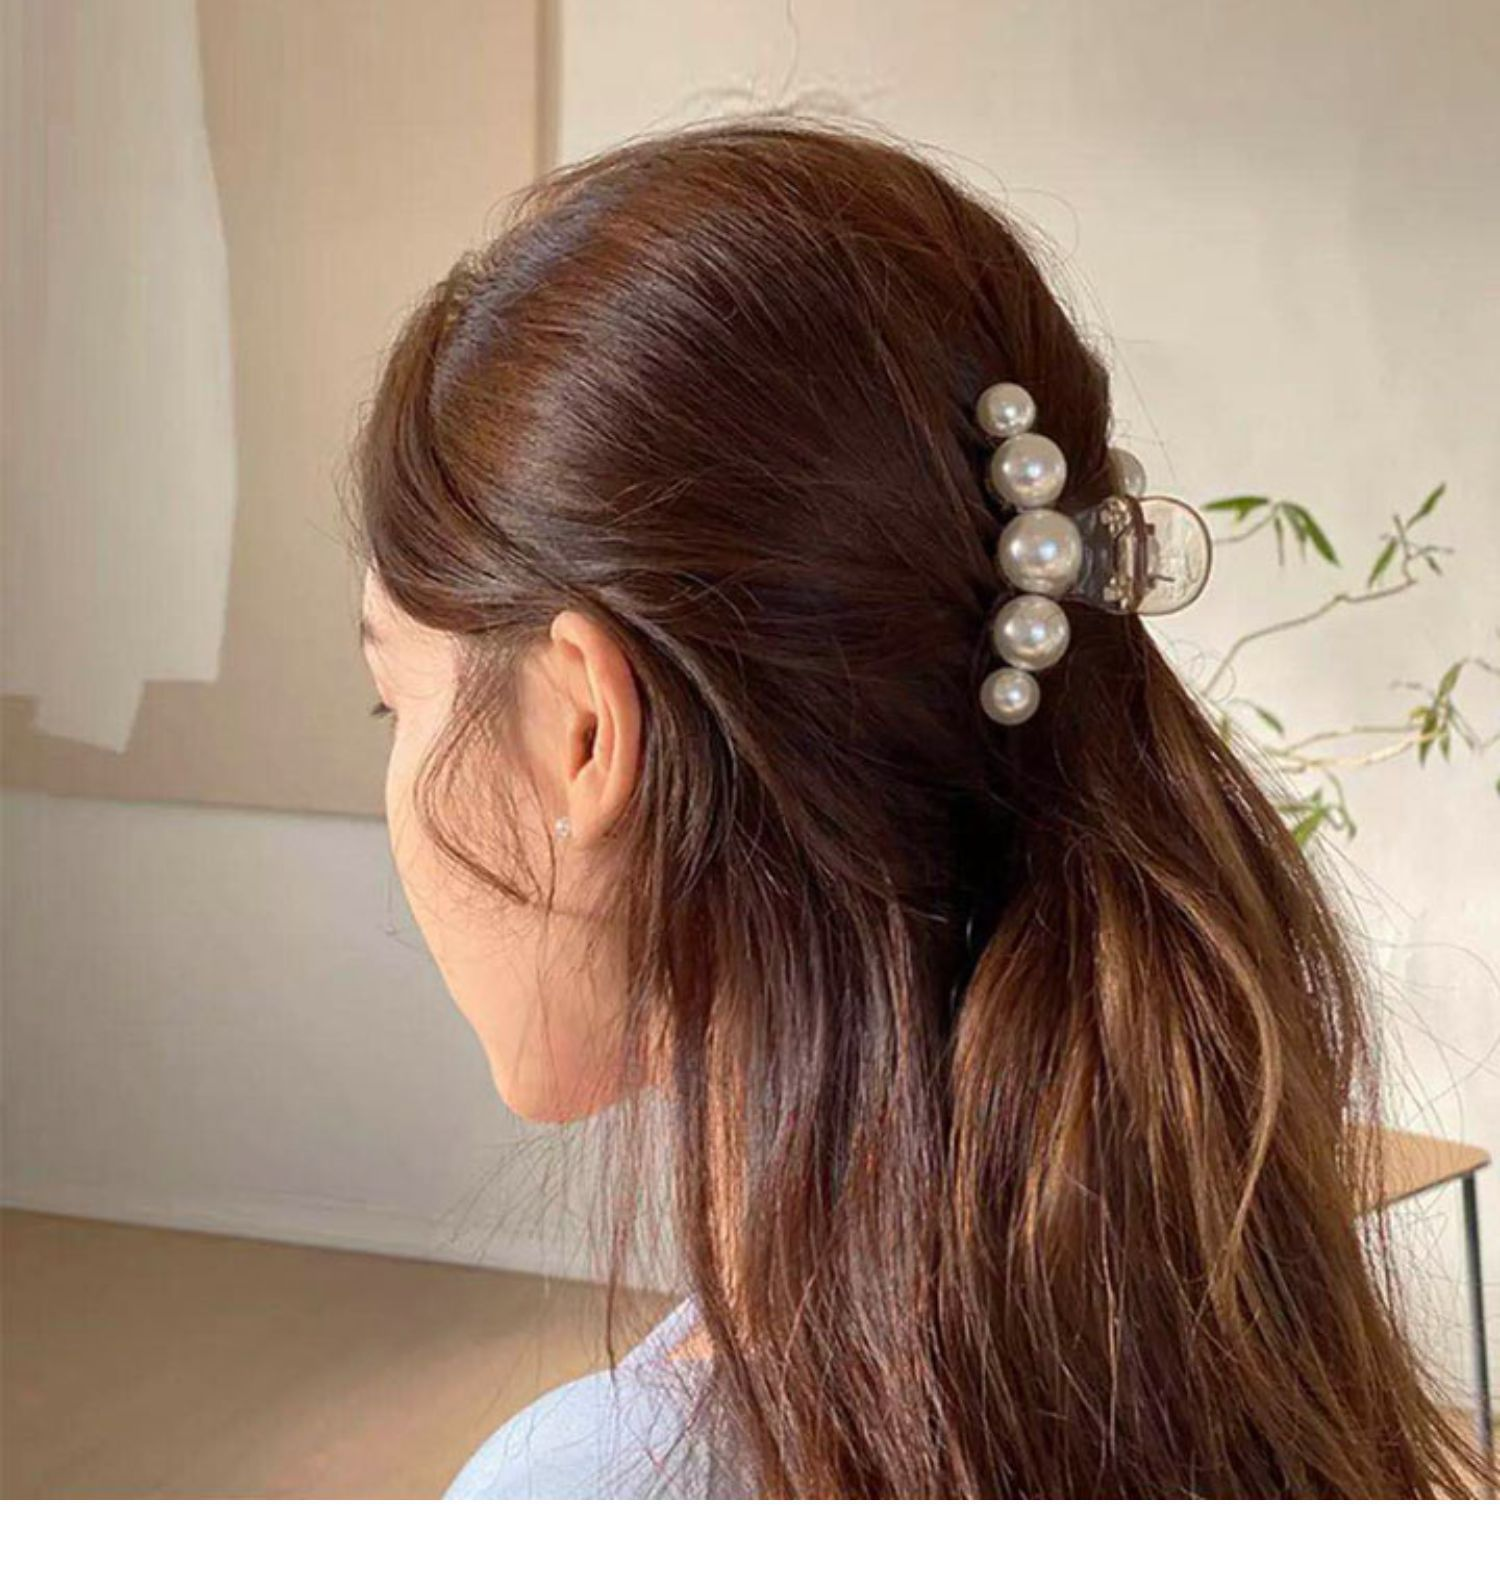 Big Pearls Hair Clip Claws Oversize Small Hair Accessories for Women Korean Black White Barrette 202